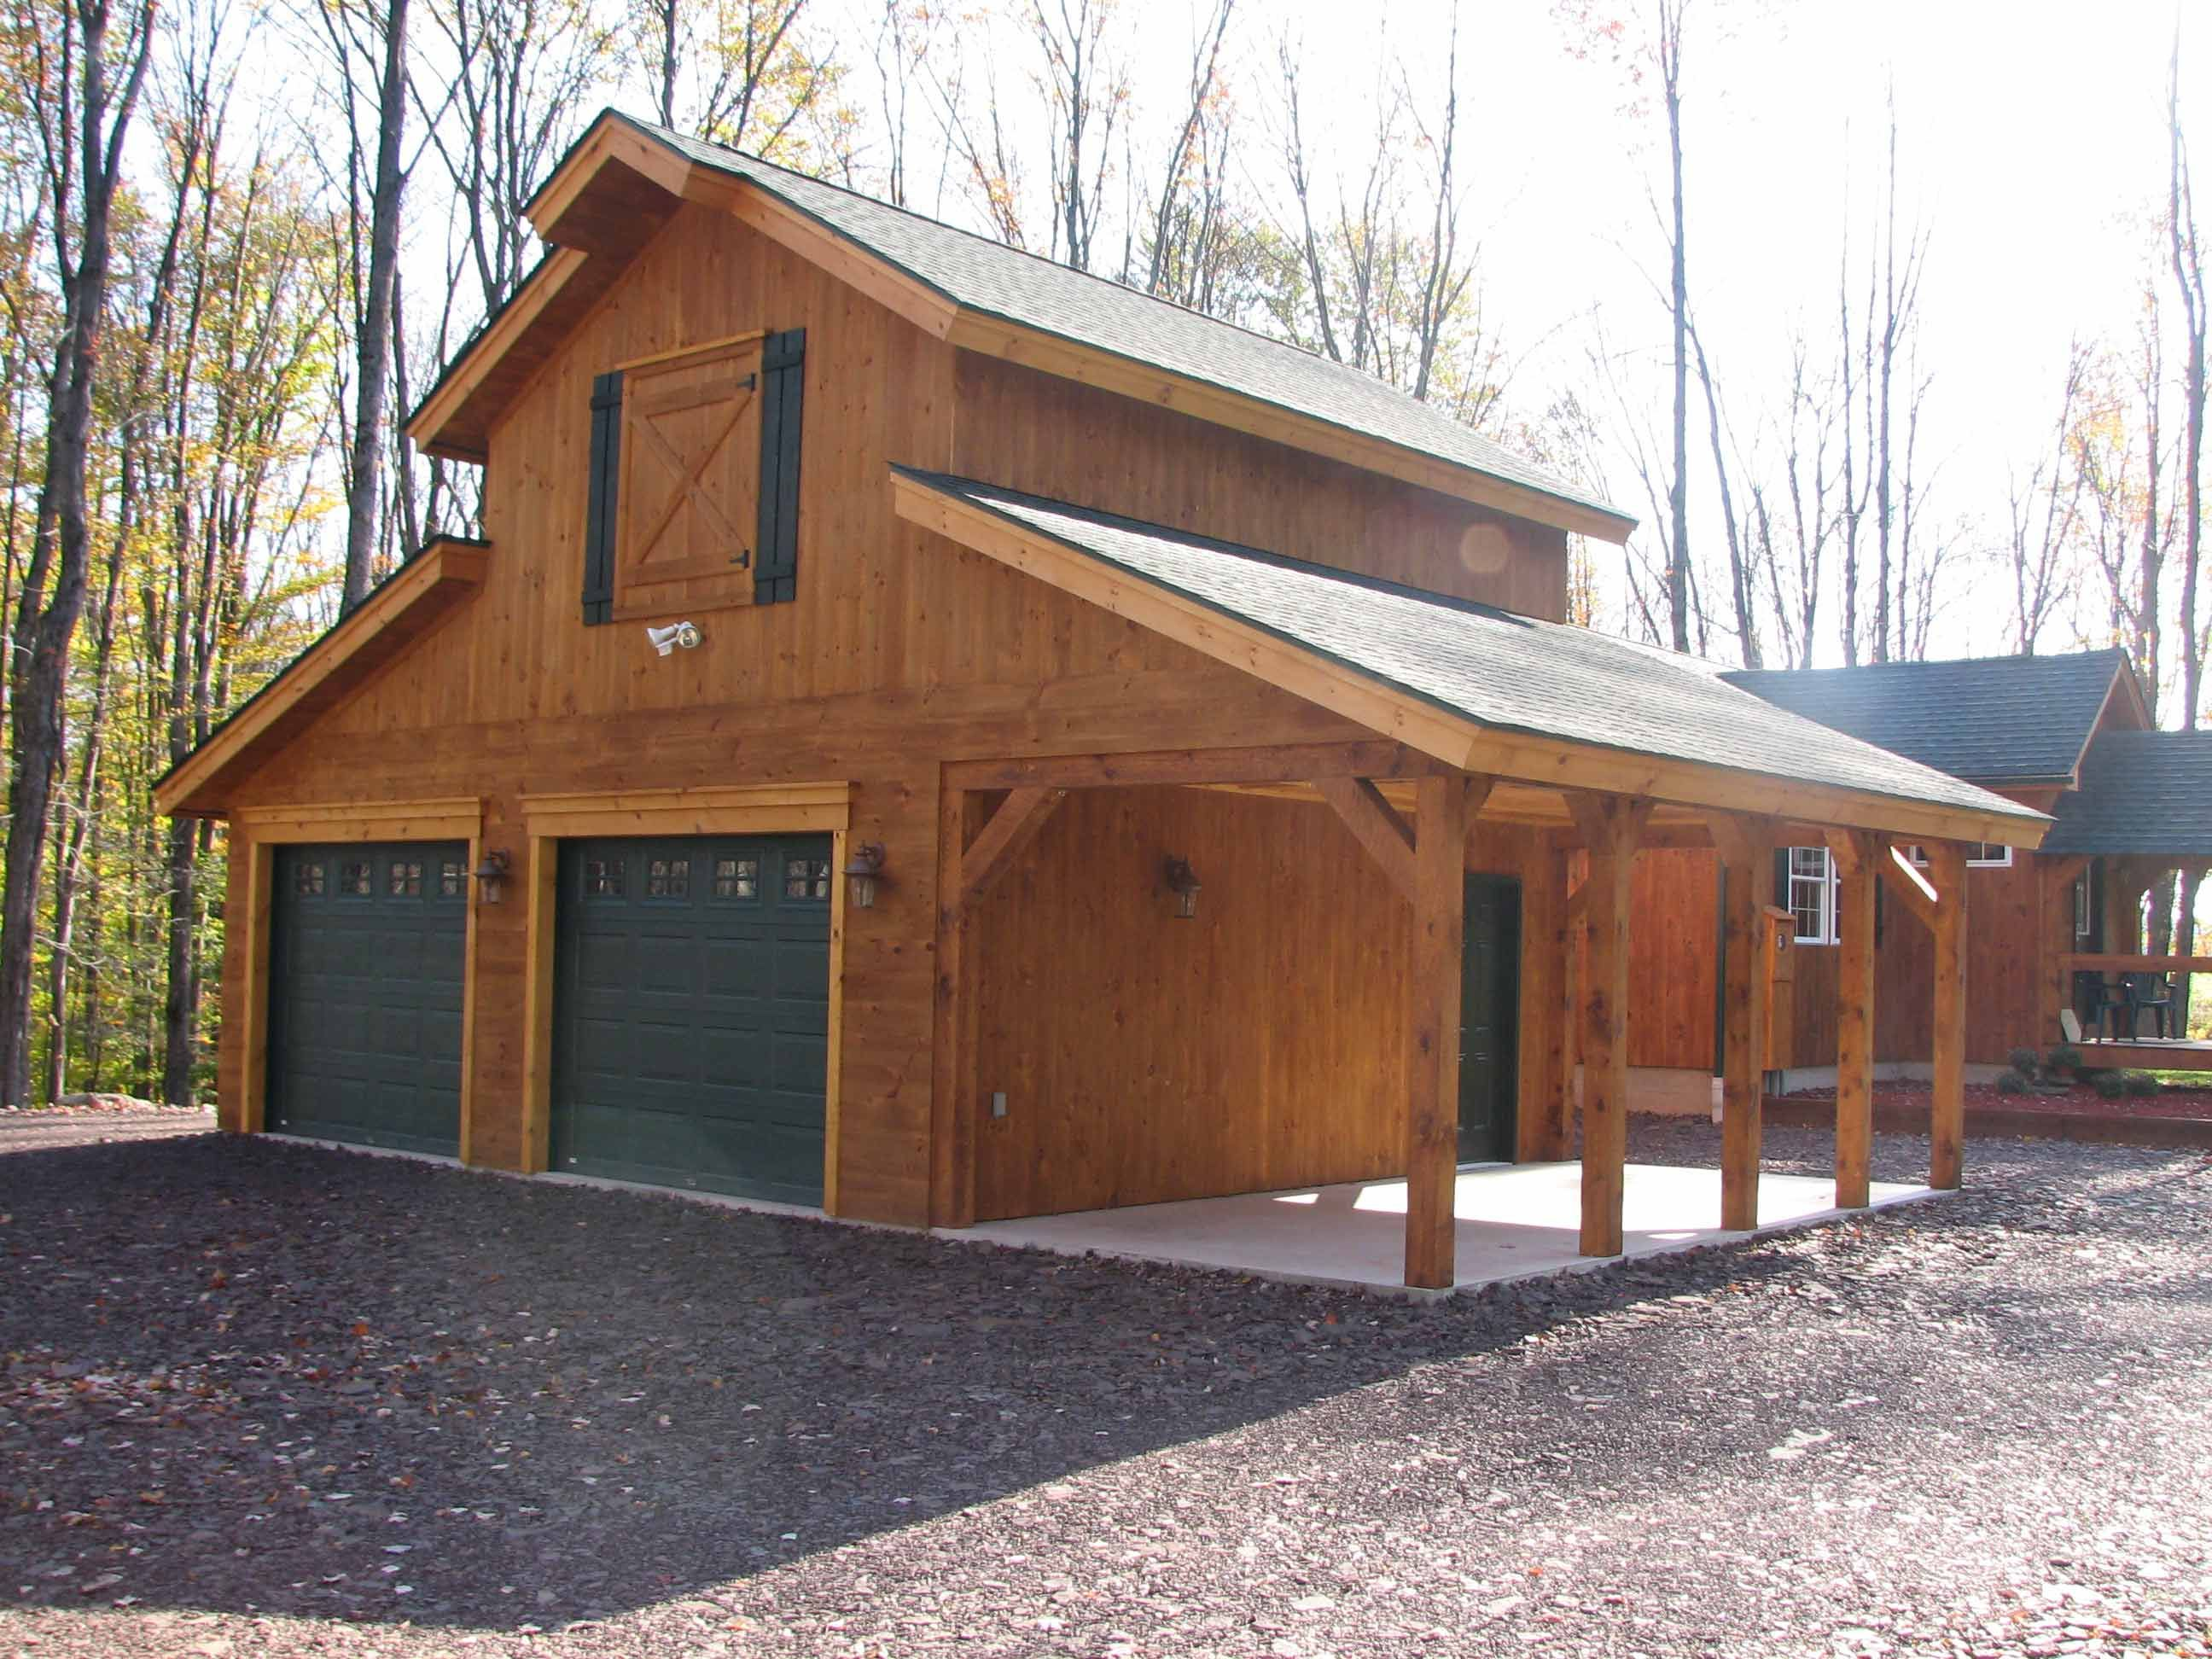 Large Garage For Motorhome And Guest Quarters Above Barn House Plans Barn Garage Plans Pole Barn Homes